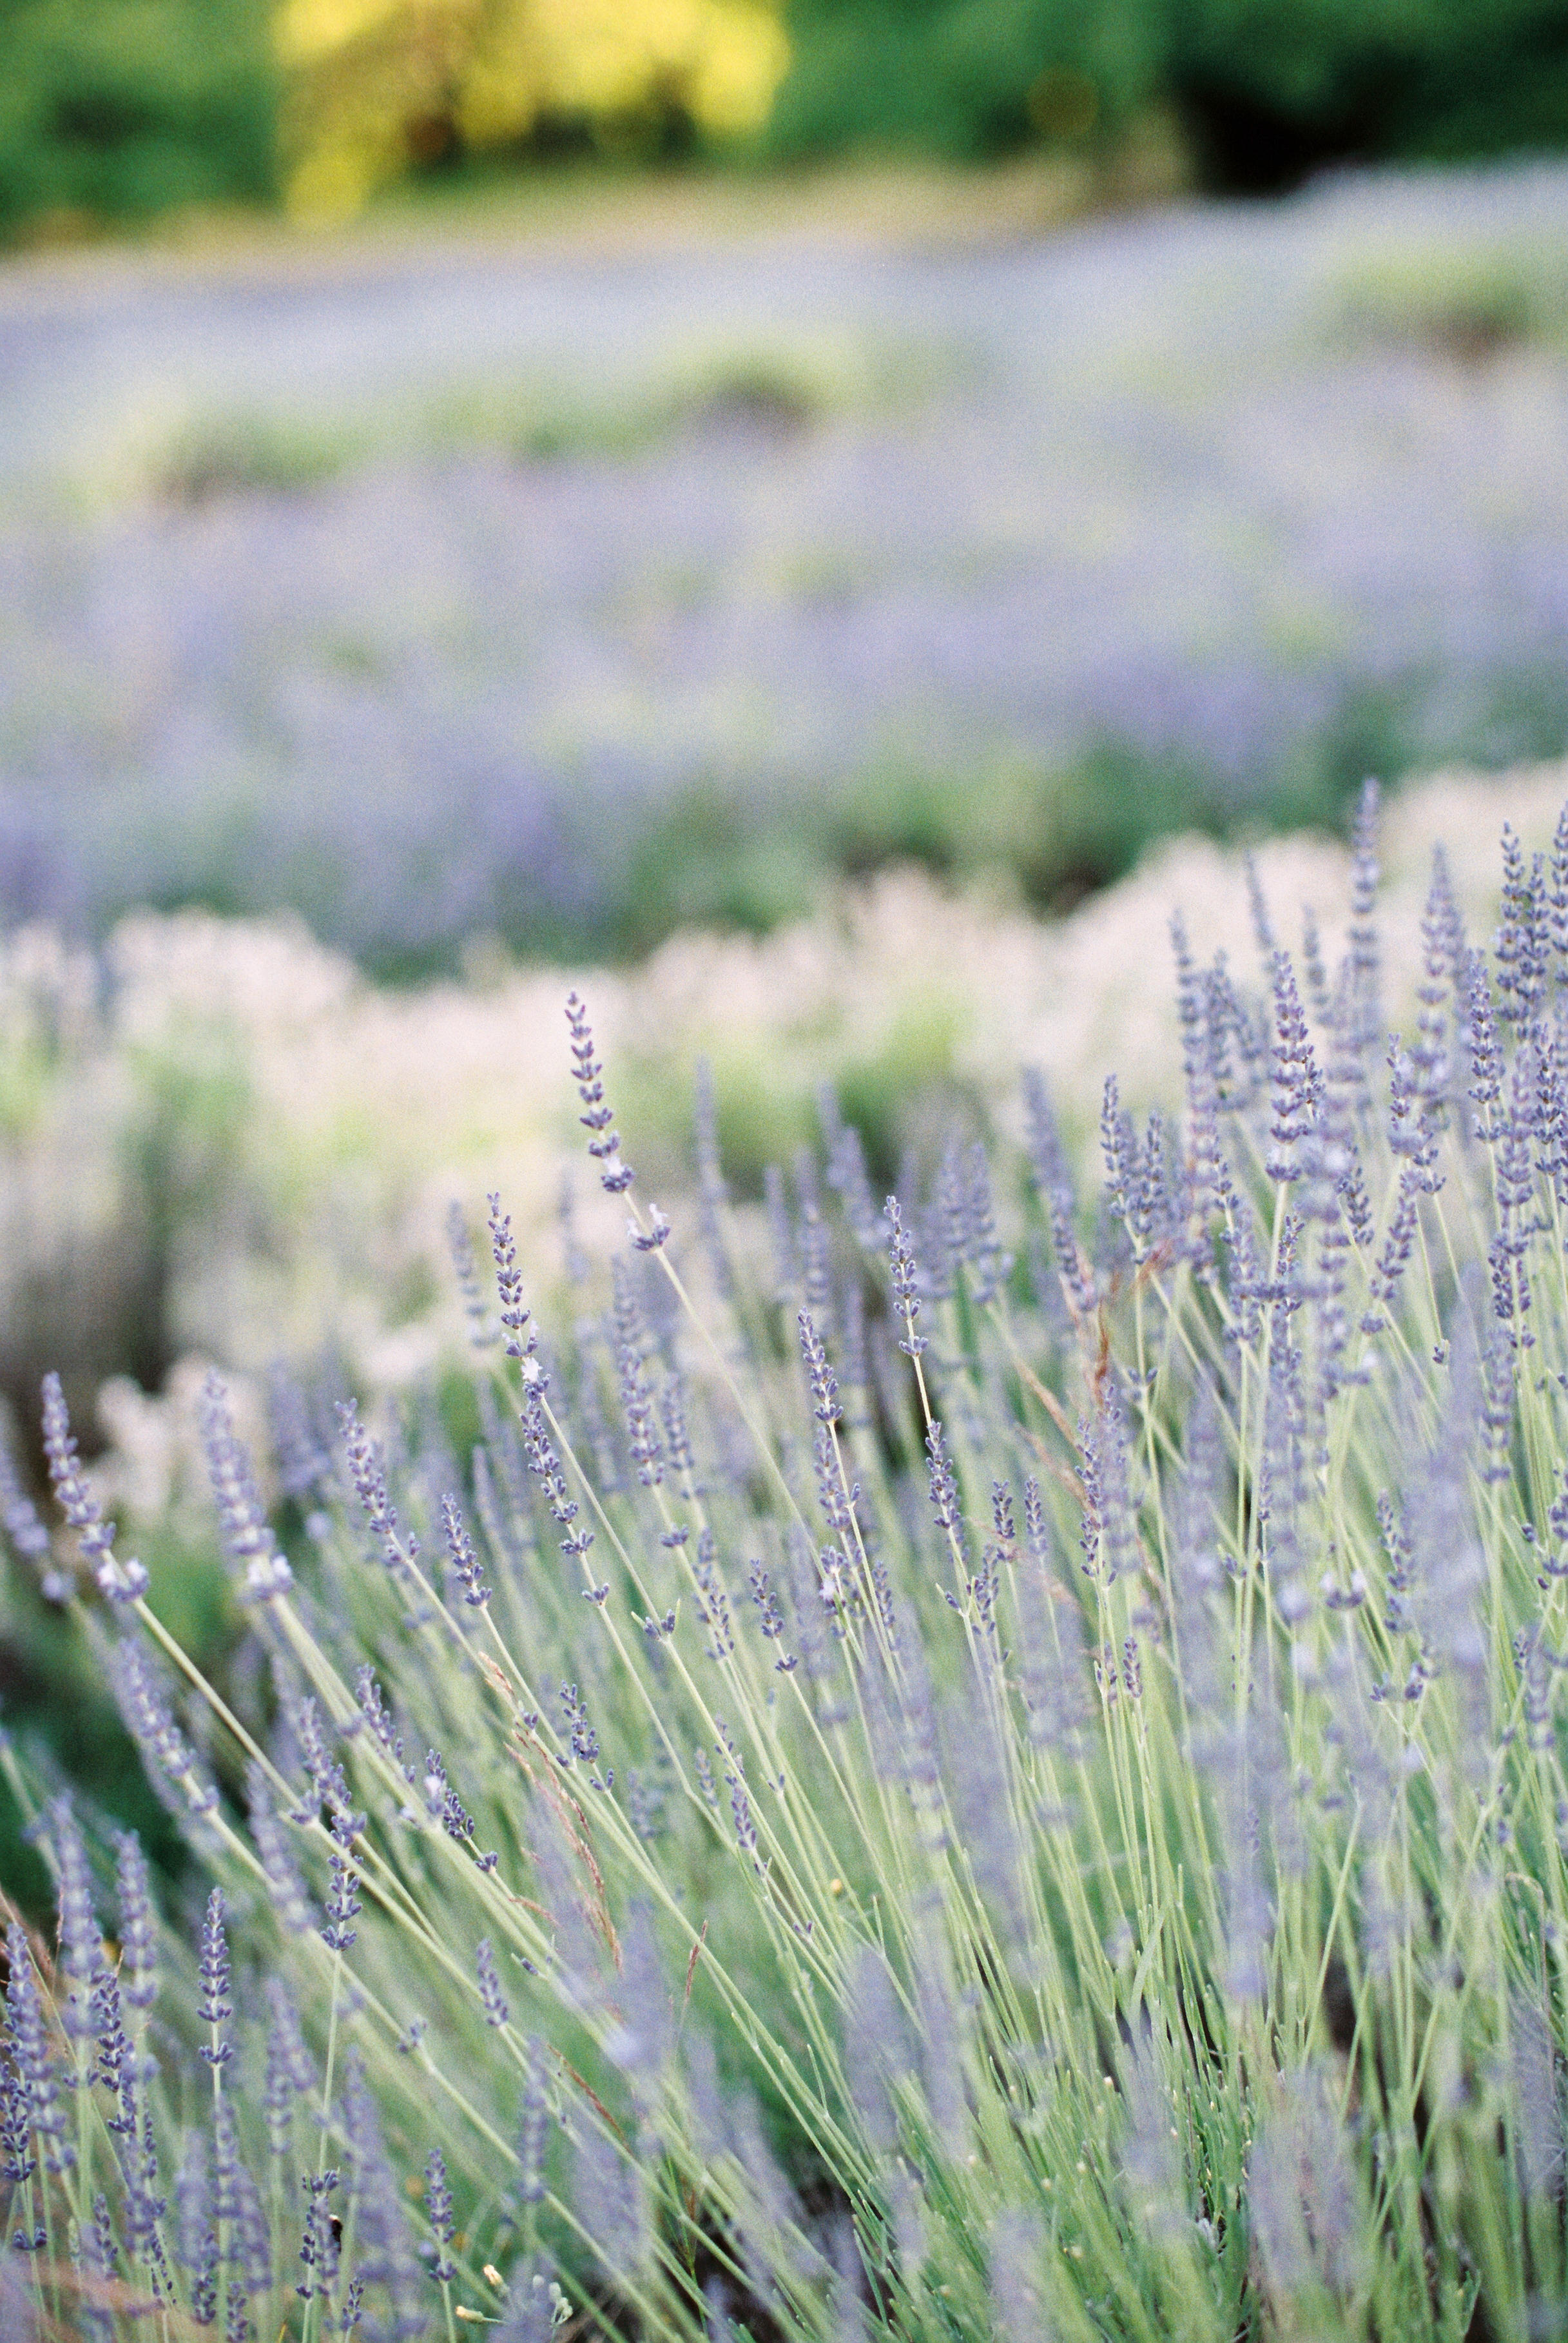 lavender-field-matnernity-photography-28.jpg